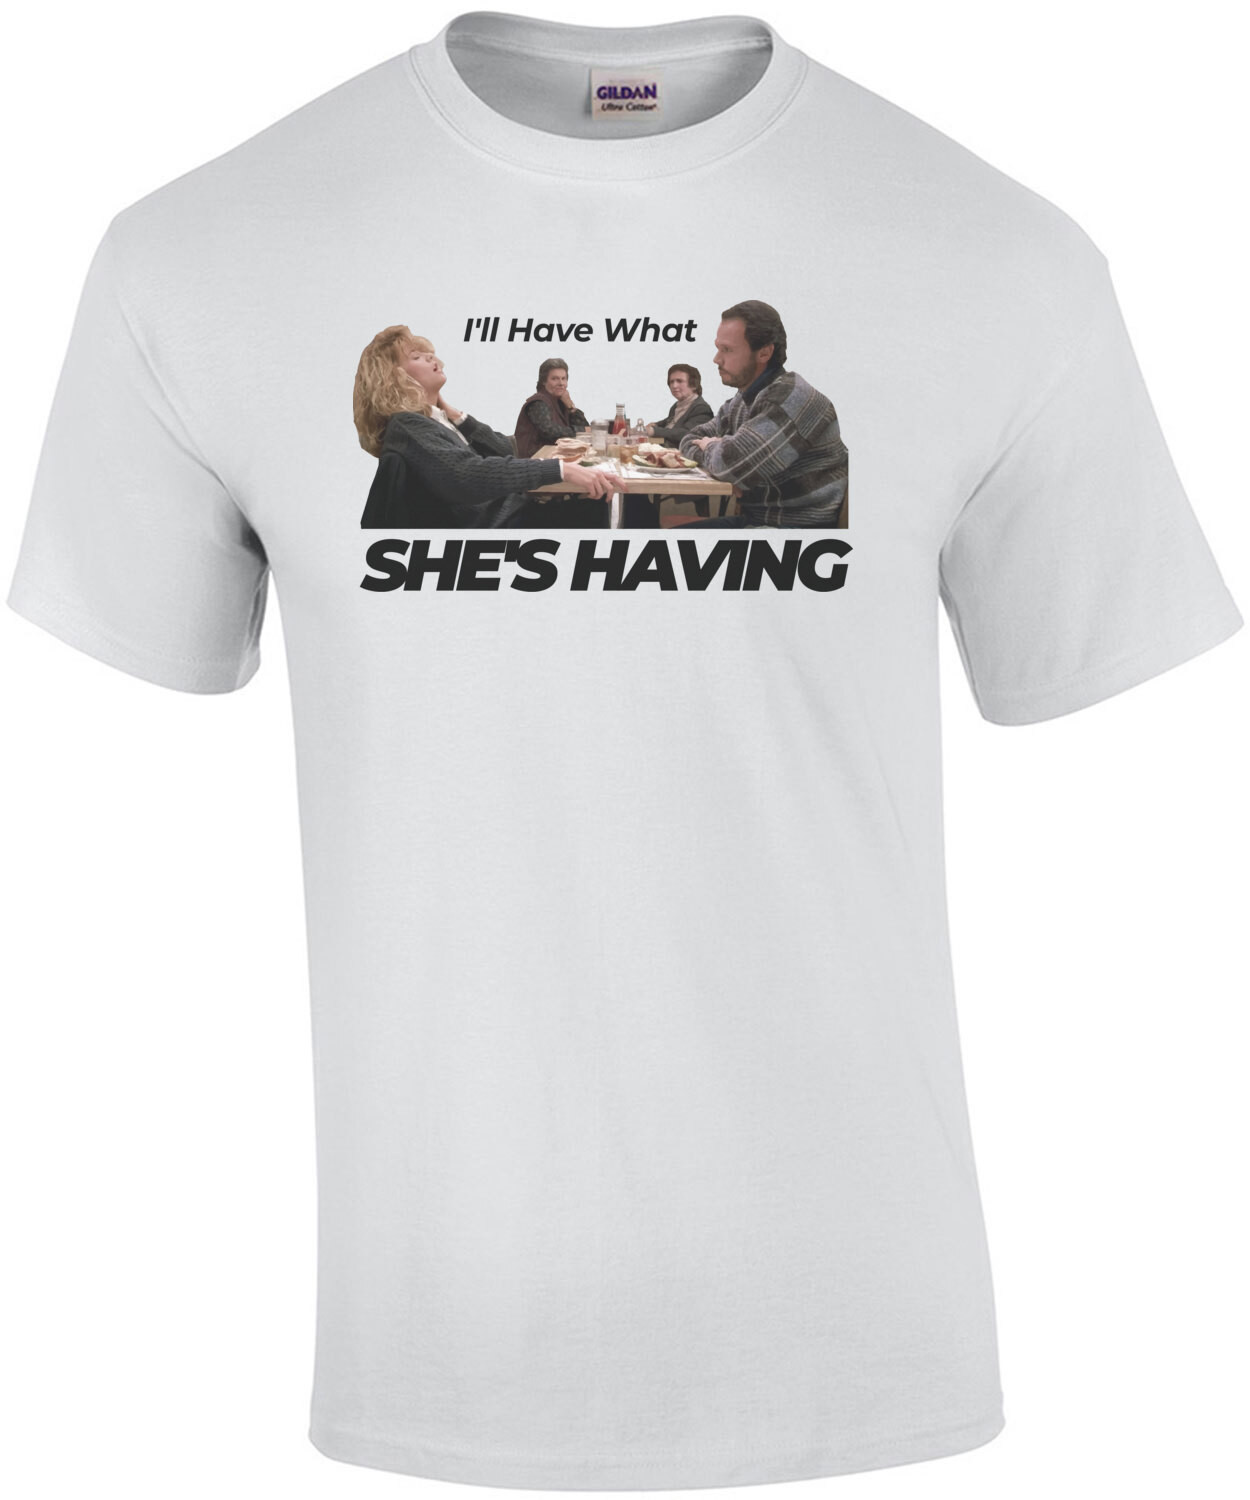 I'll have what she's having - When Harry Met Sally - 80's T-Shirt